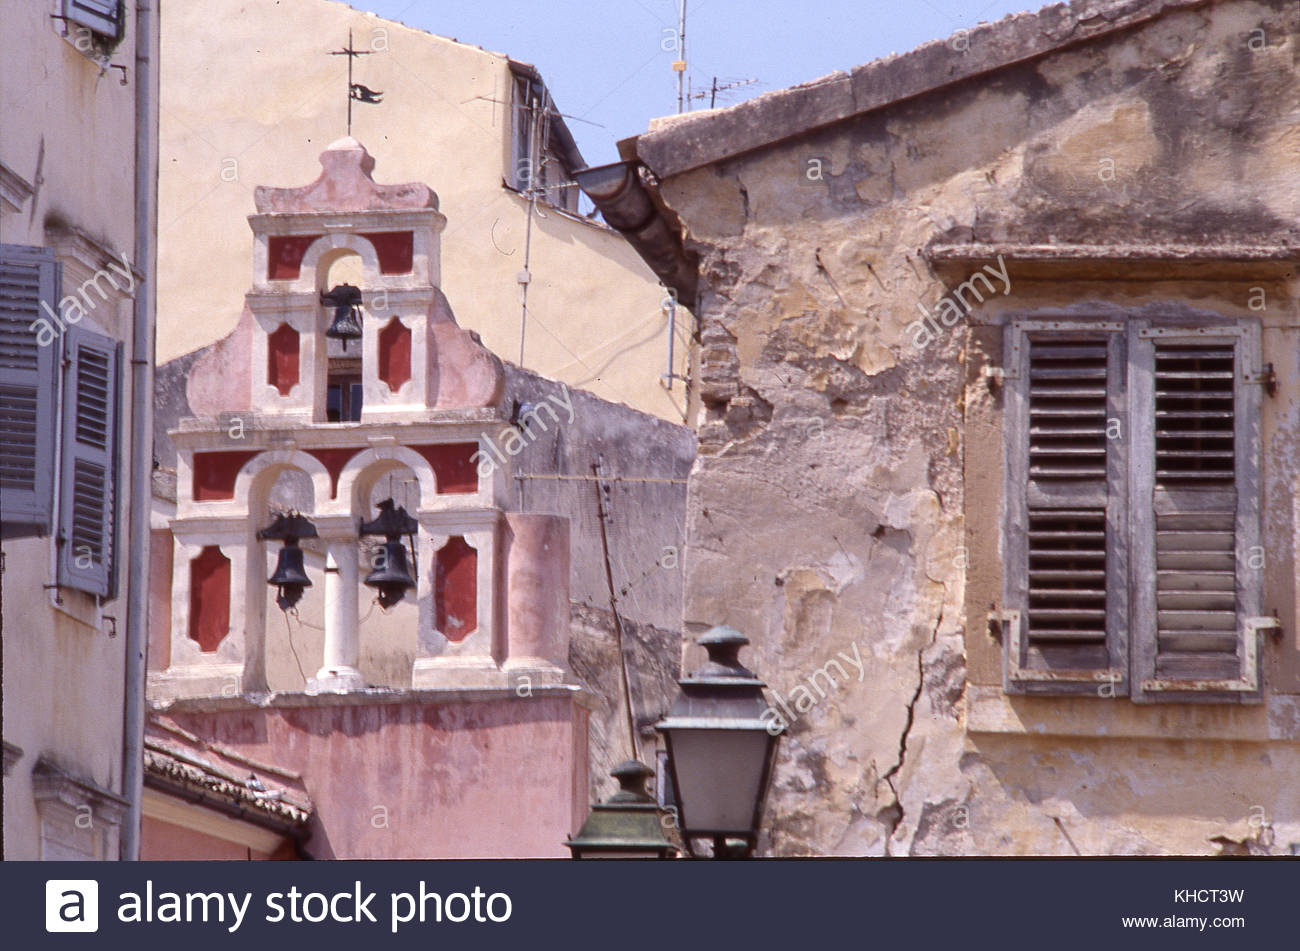 Older homes stock photos older homes stock images alamy - Homes in old churches ...